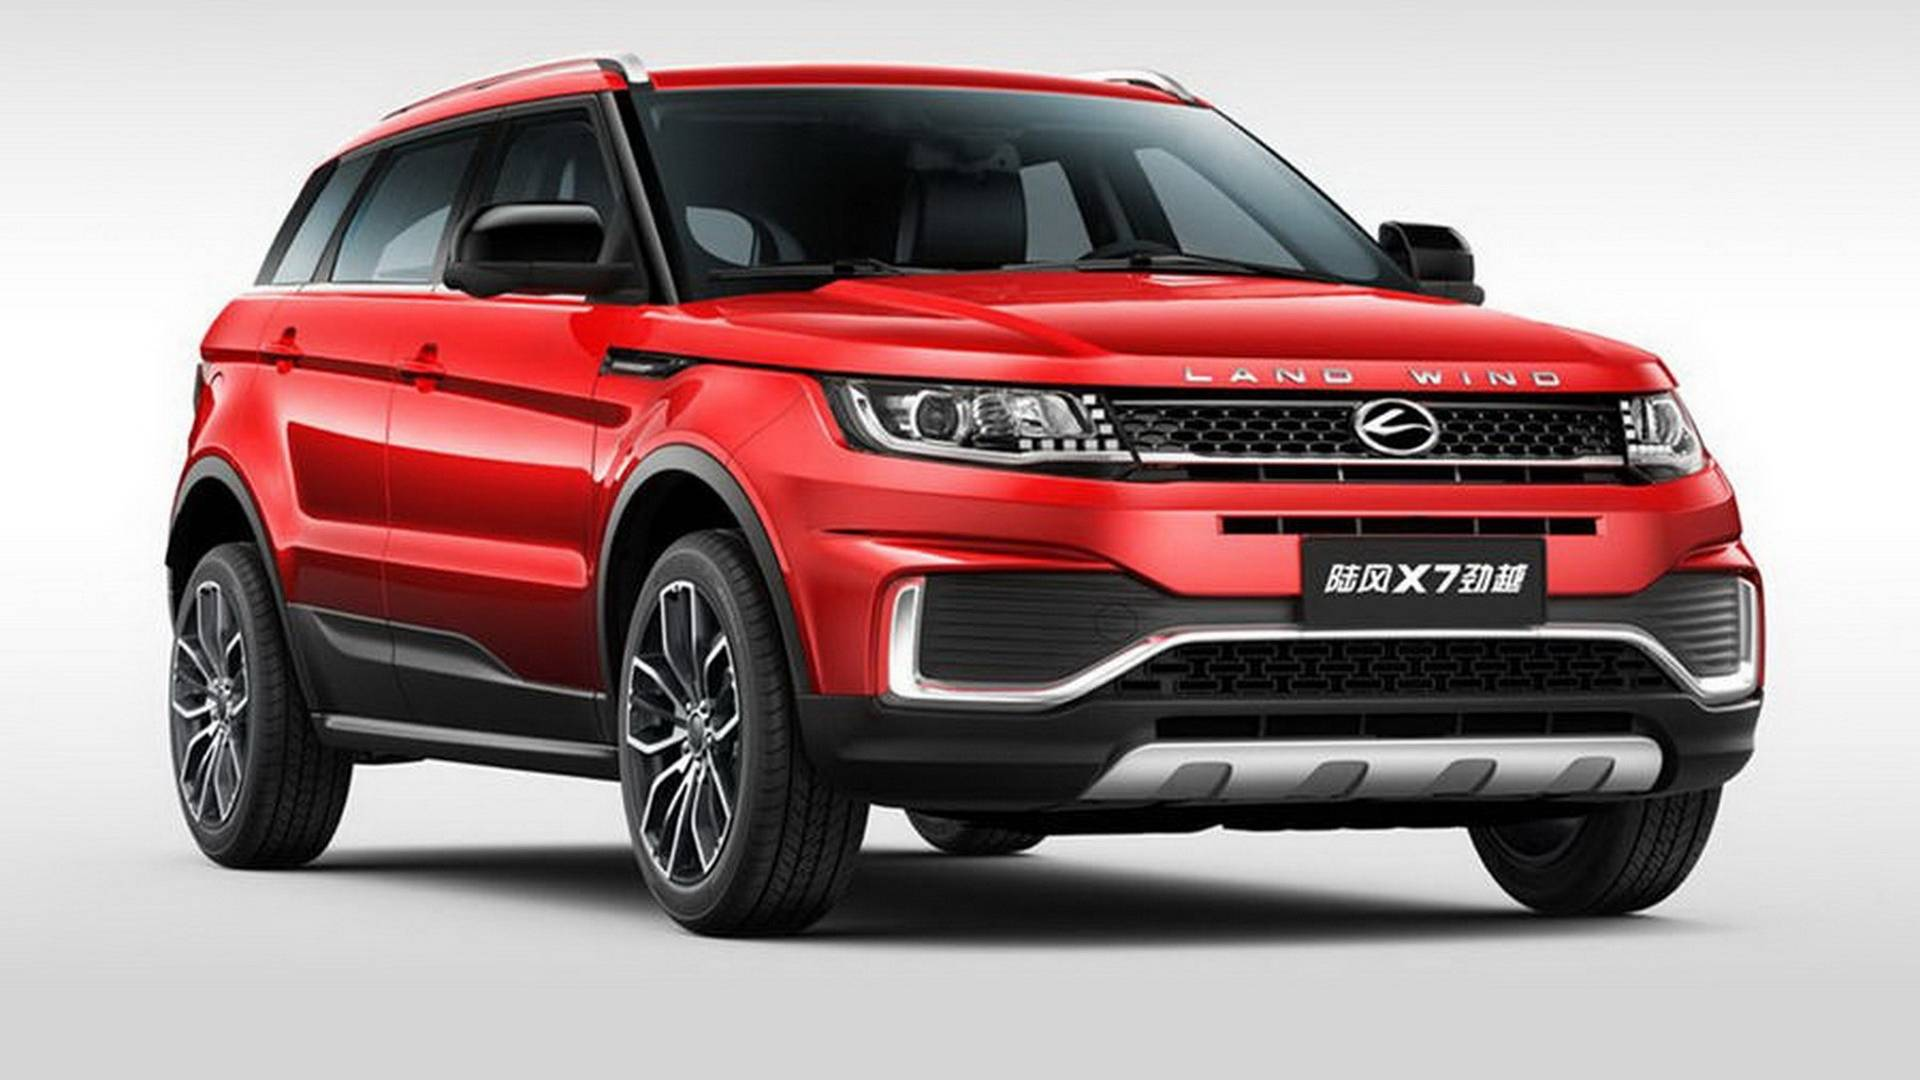 Chinese Clone Of Range Rover Evoque Gets A Facelift Looks A Little